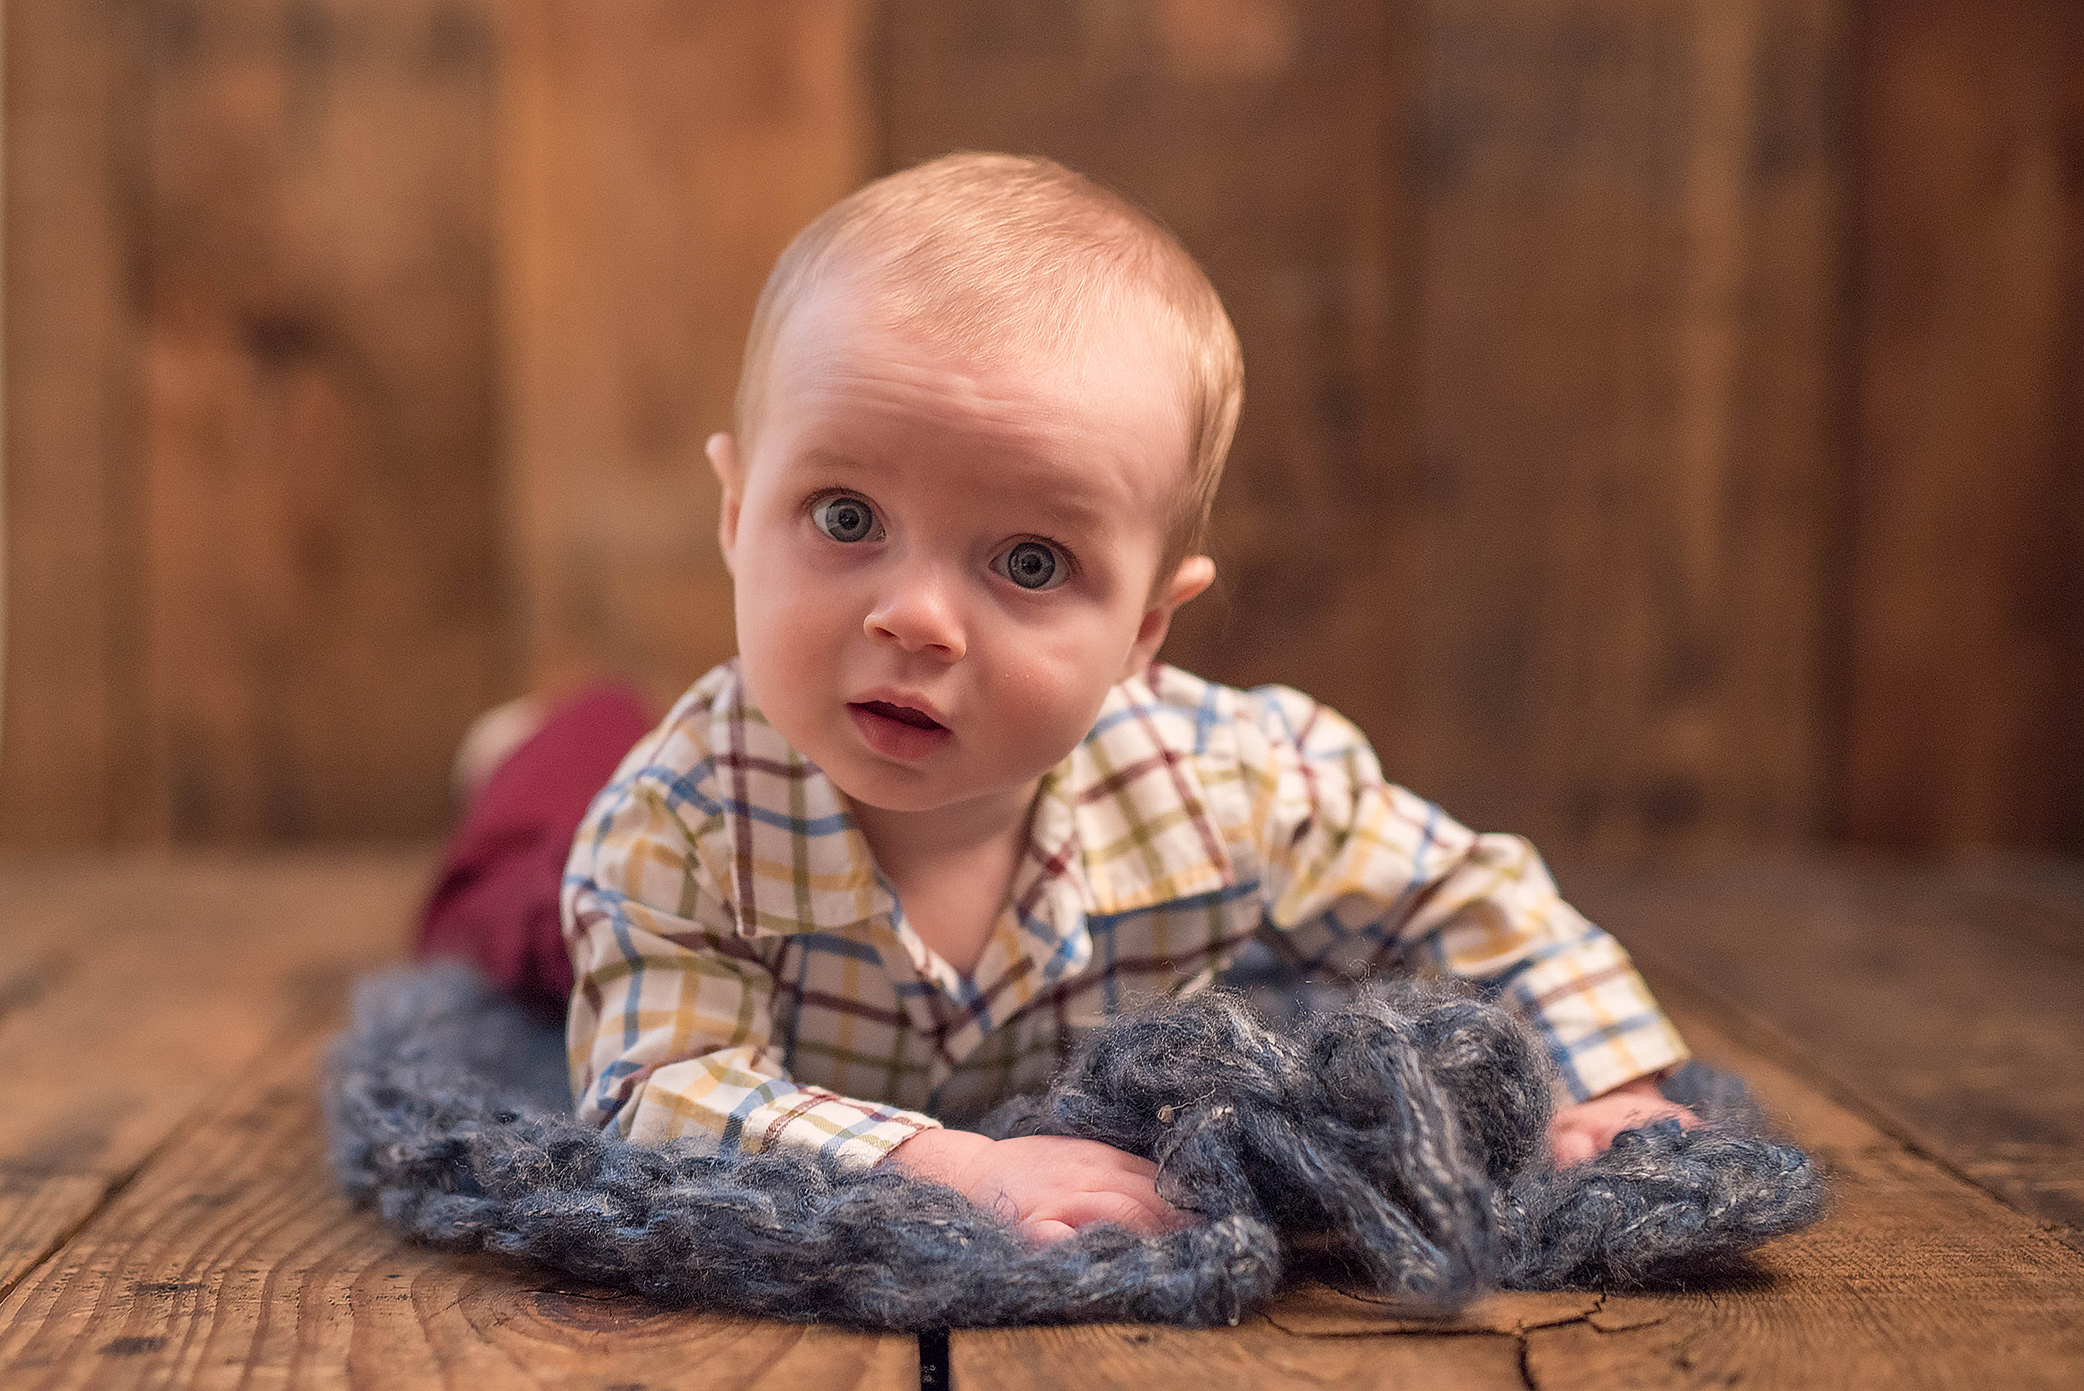 6 Month baby photography Pittsburgh. Julie Bradley is Pittsburgh